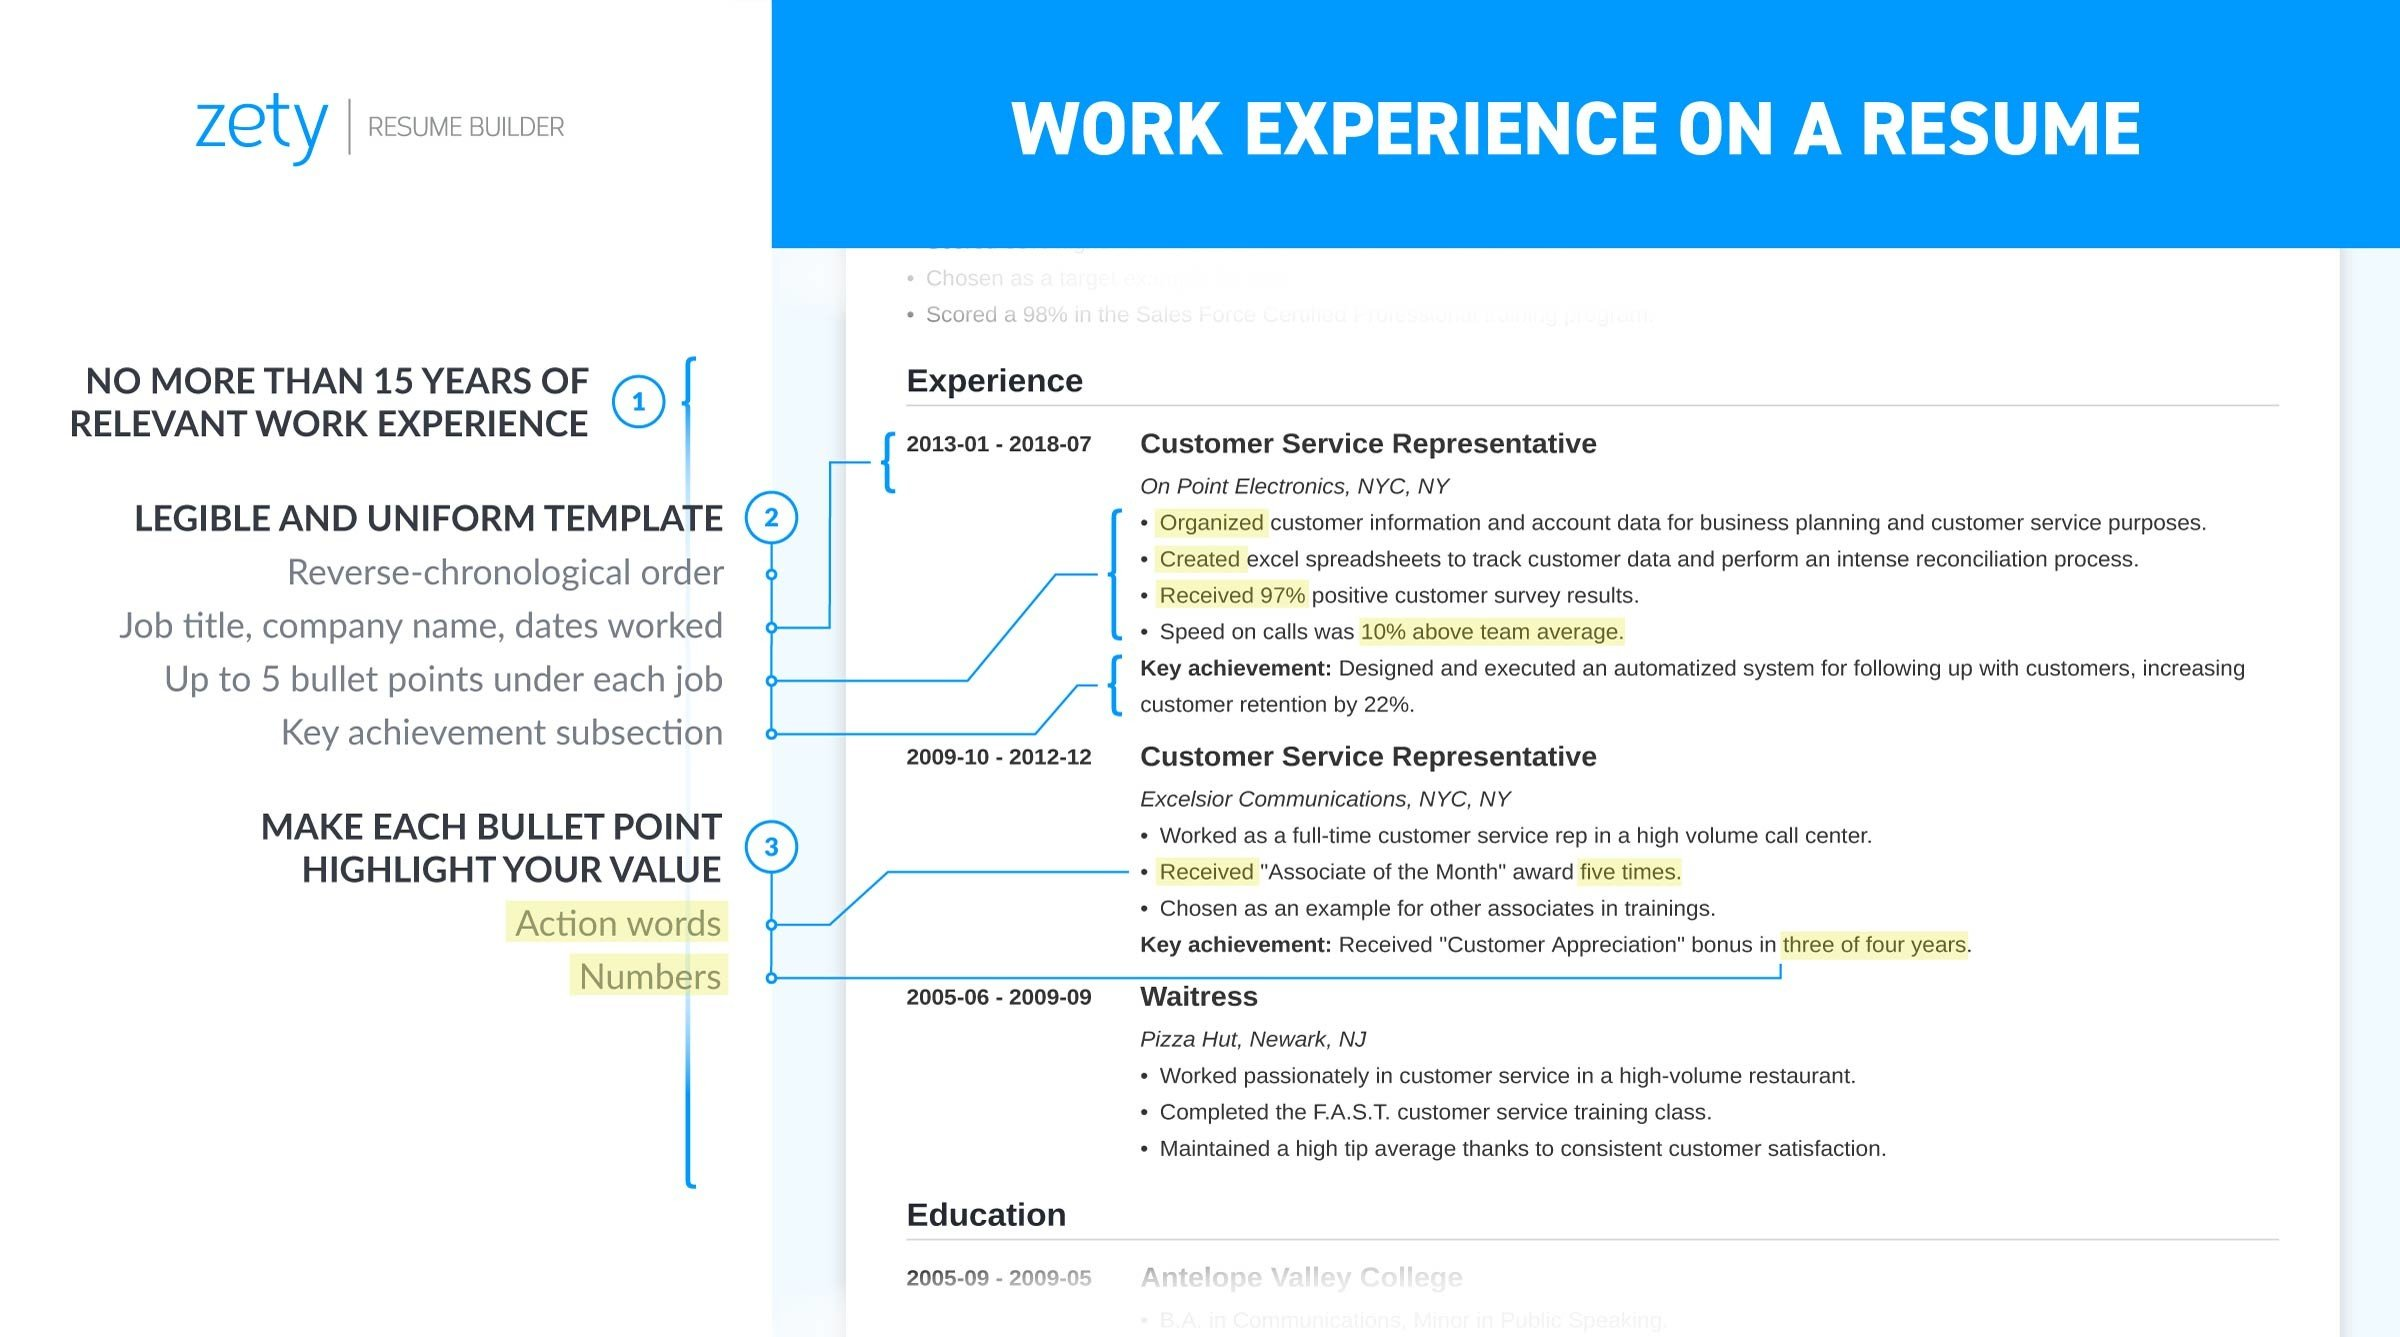 resume work experience history example job descriptions best format for on up your staff Resume Best Resume Format For Long Work History